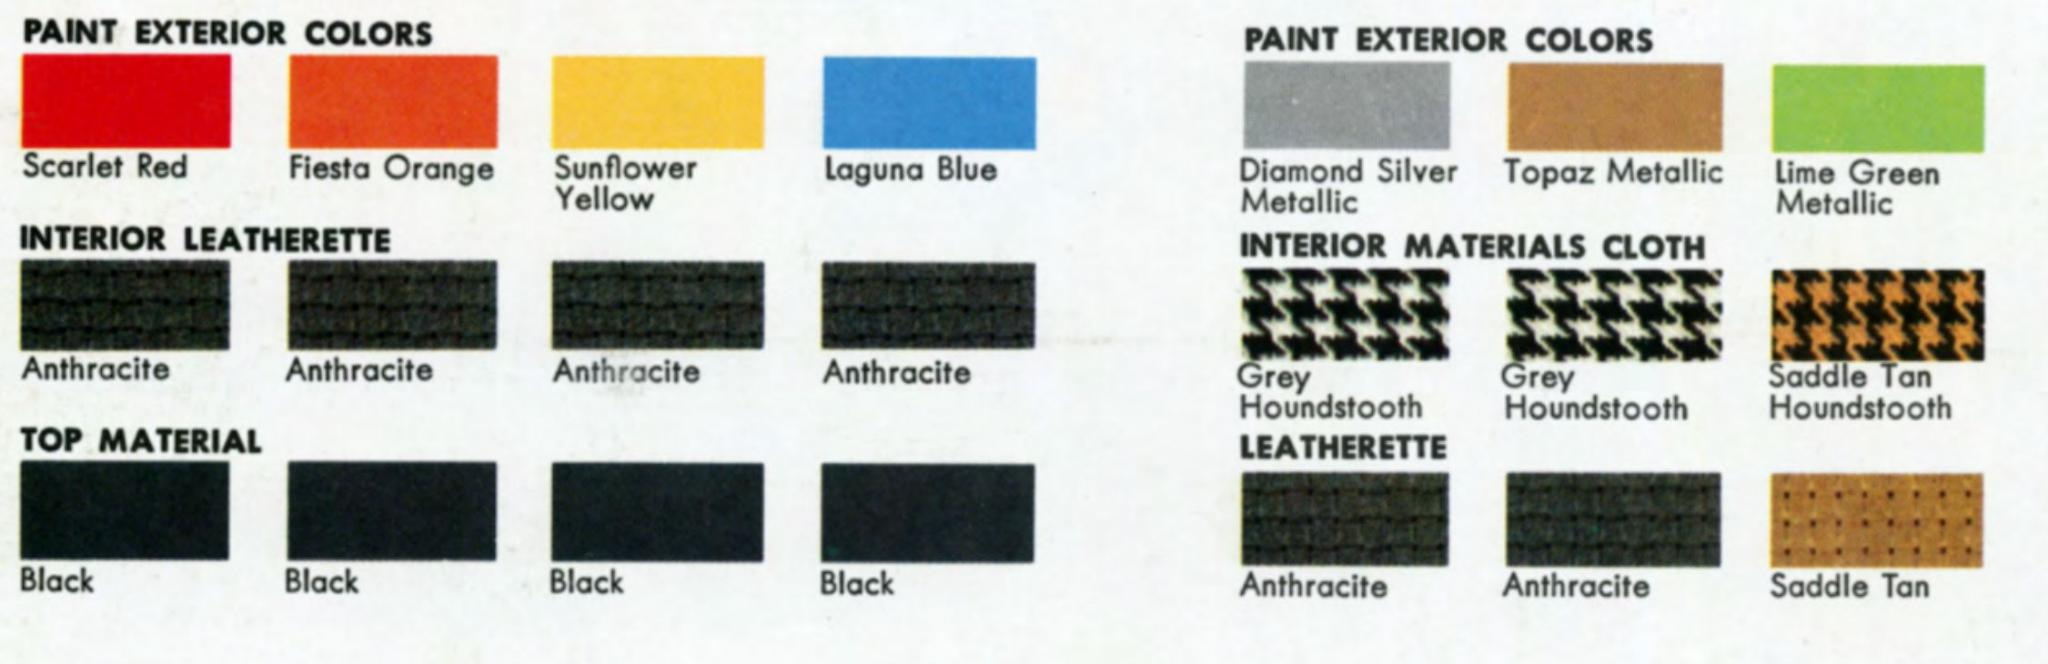 1976 interior and exterior colors for the volkswagen Beatle